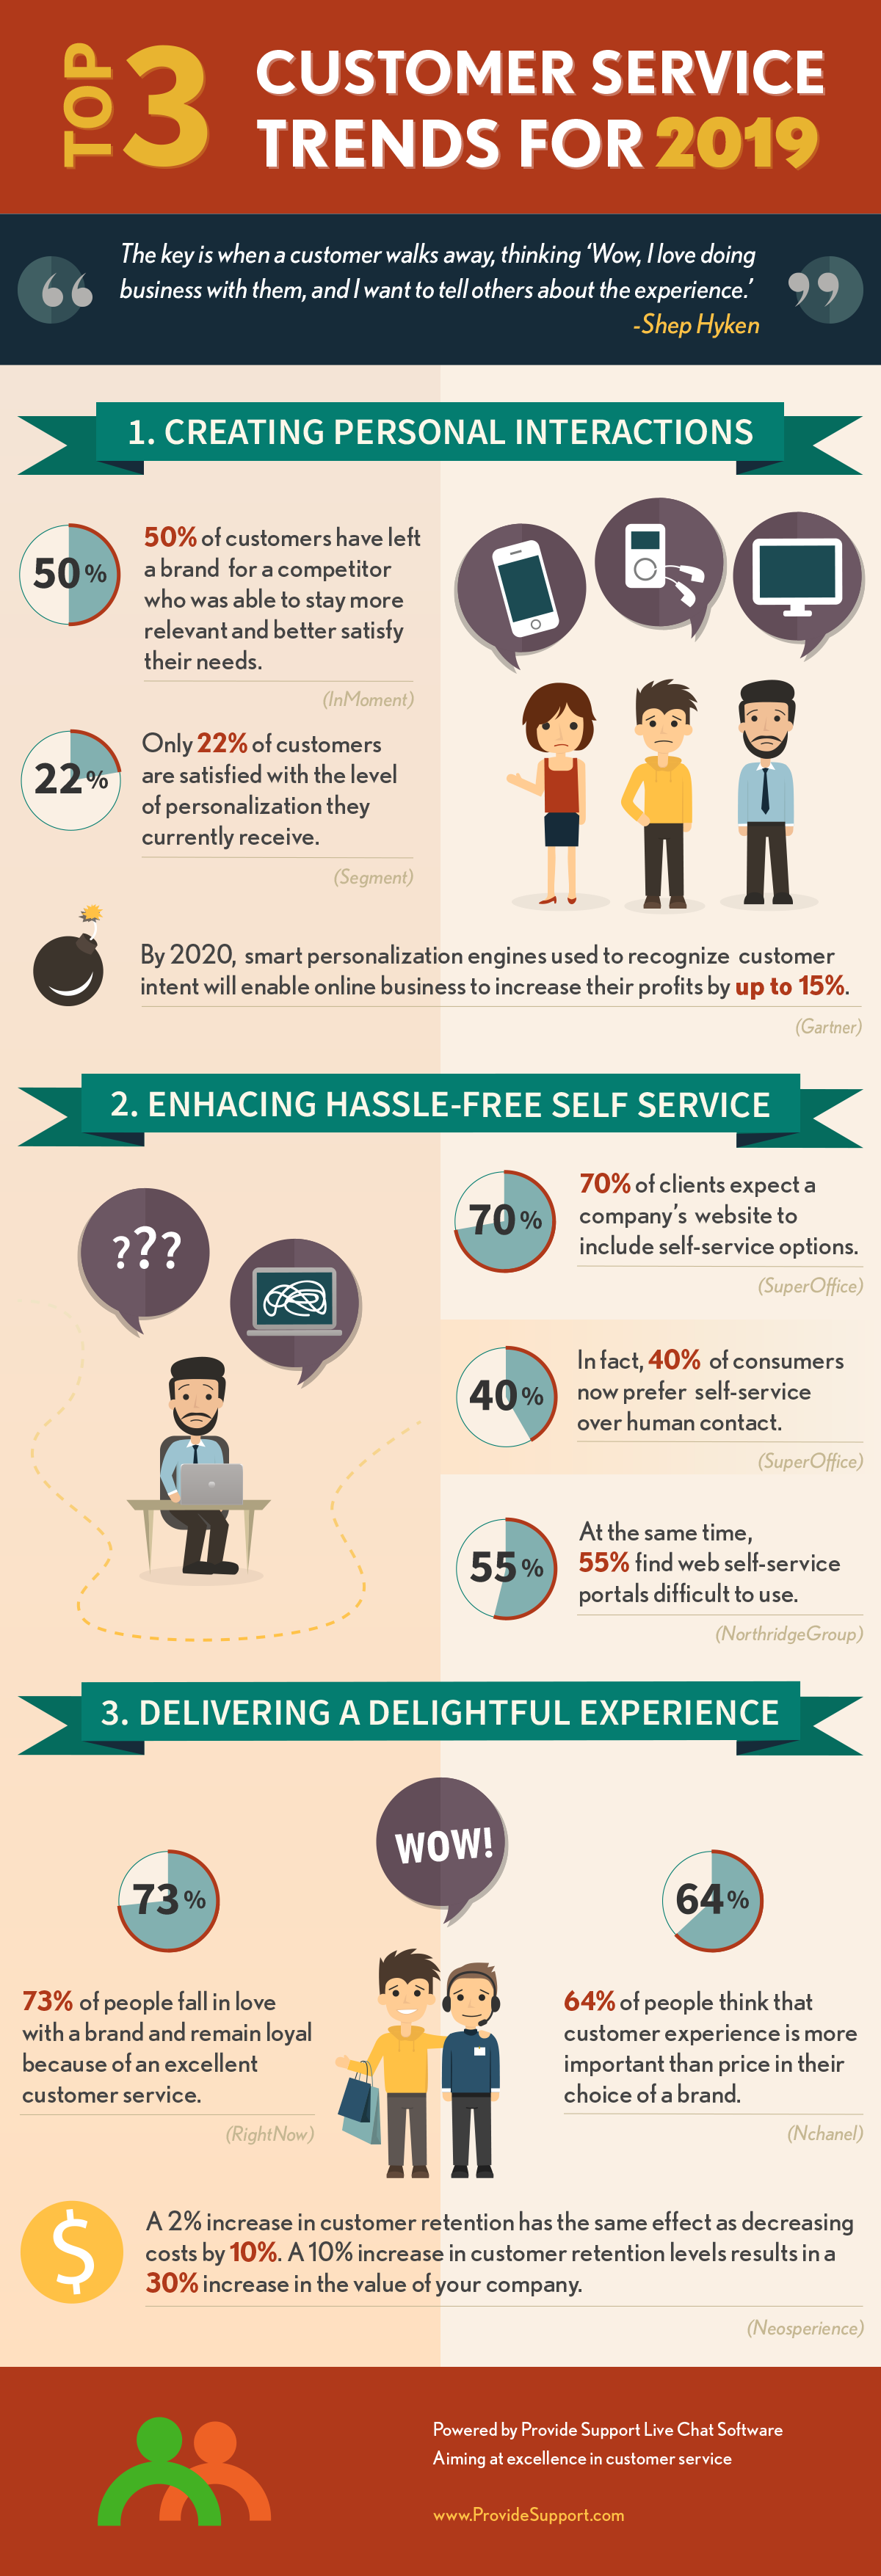 Top 3 Customer Service Trends for 2019